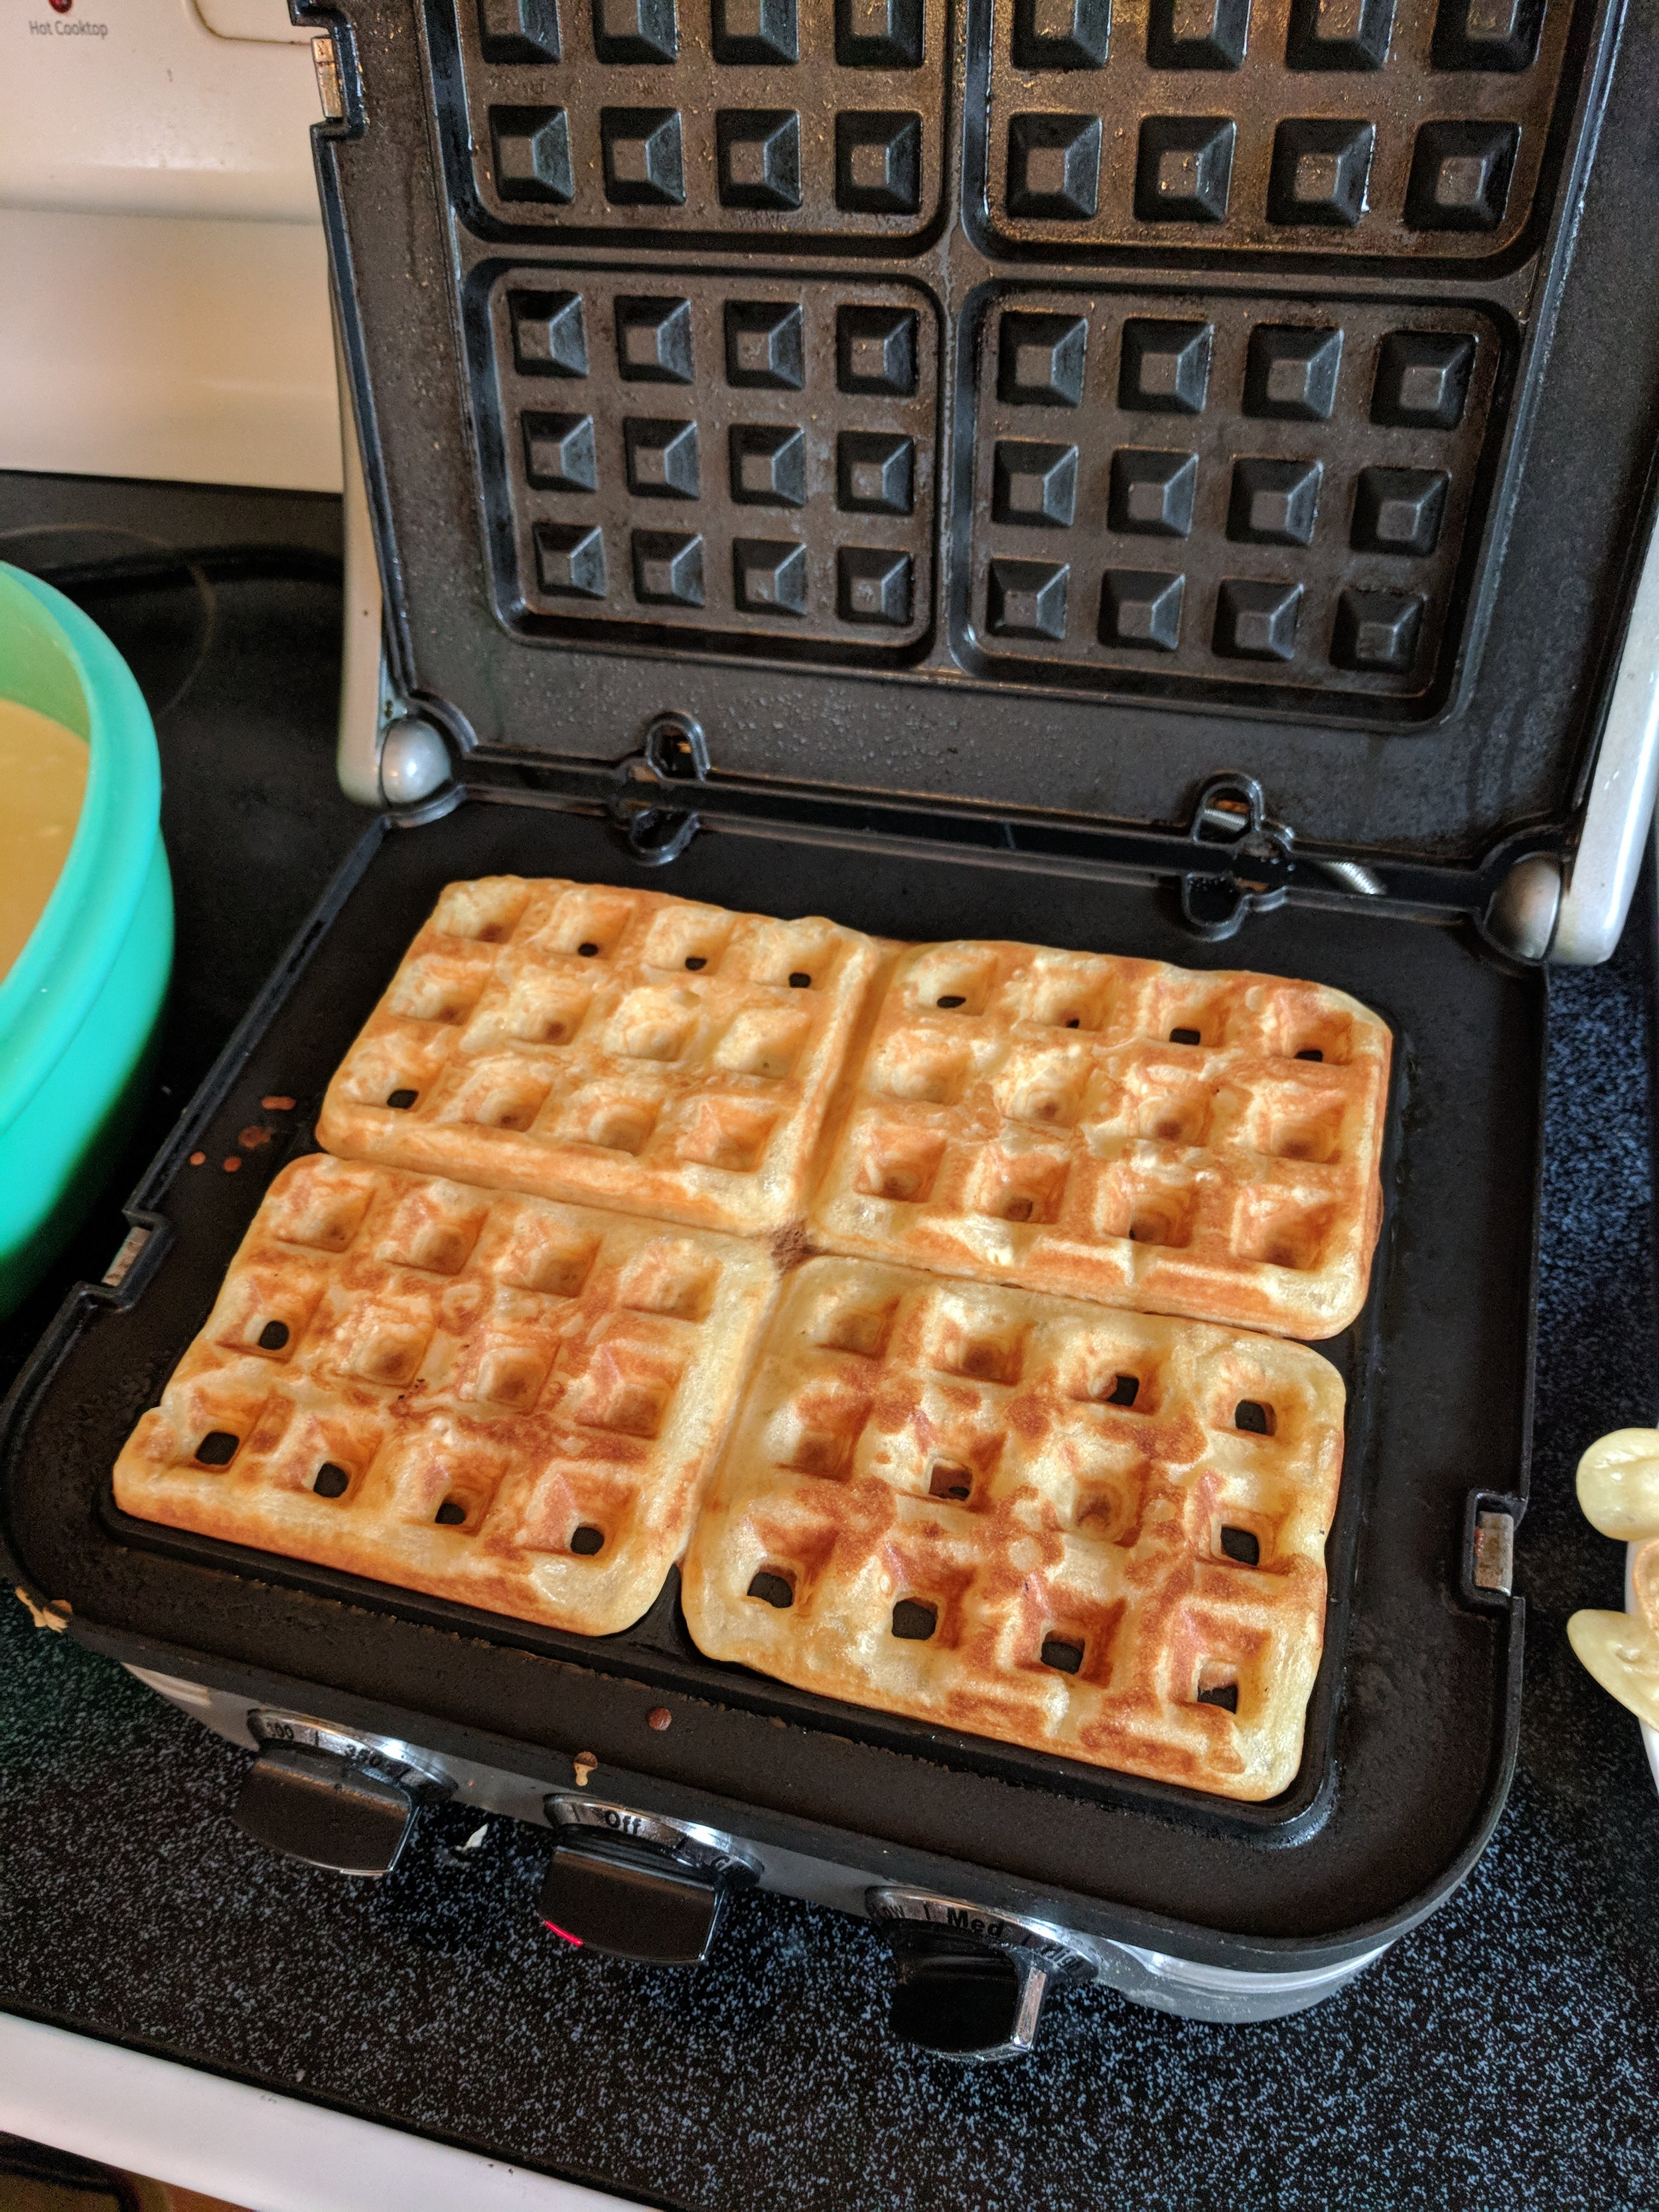 add the cuisinart griddler to your kitchen along with waffle plates